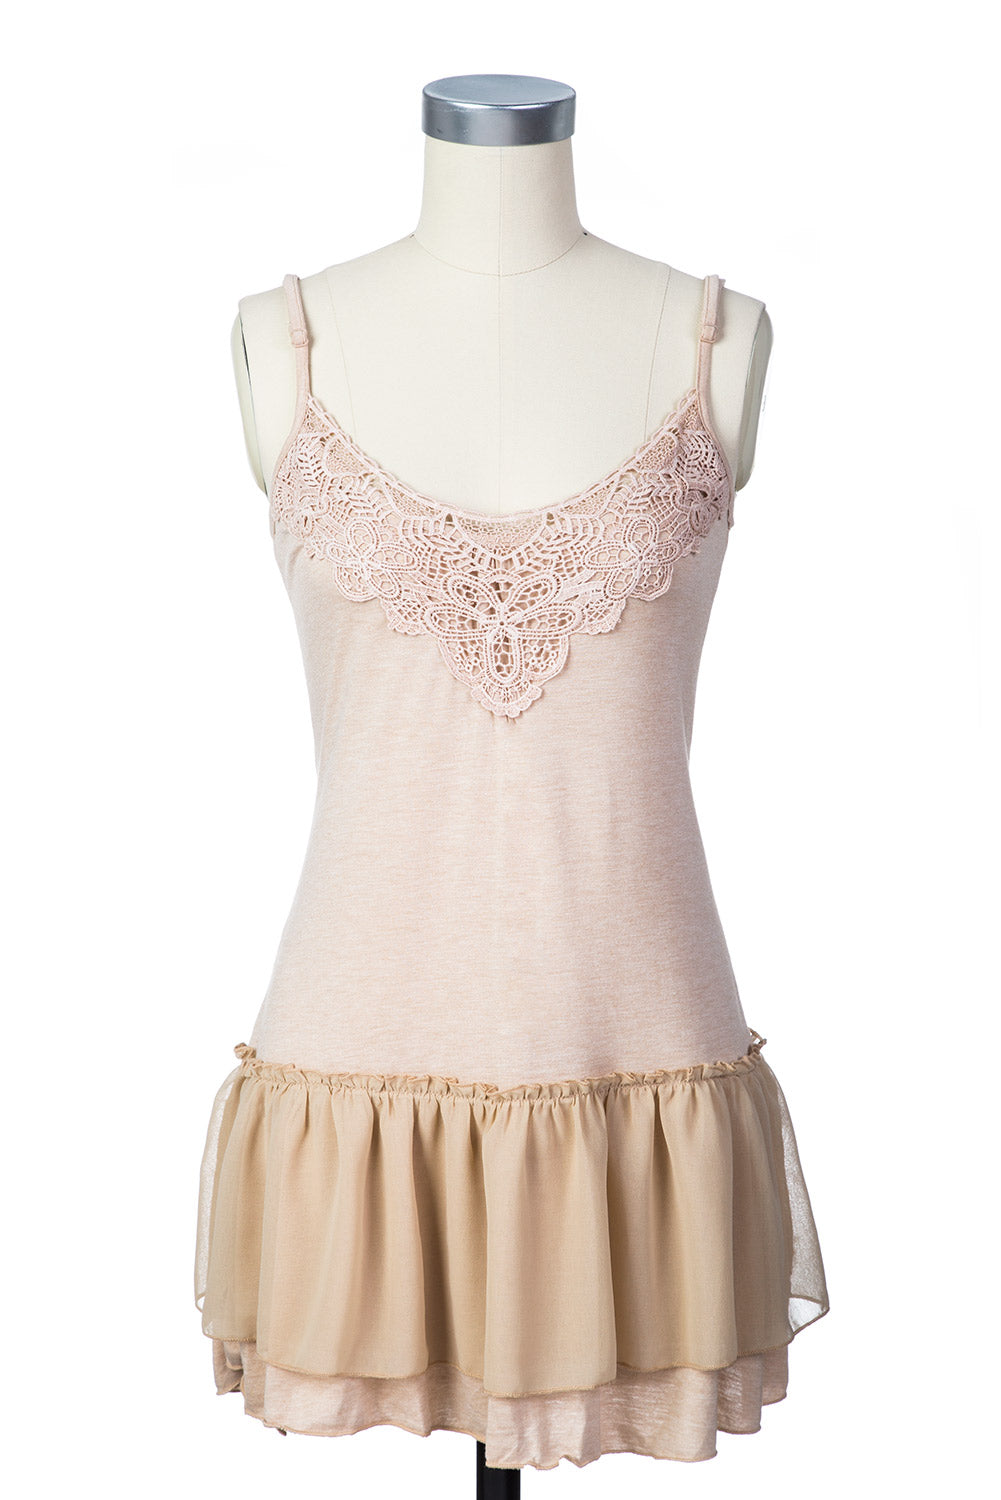 Type 2 Comfort Incarnate Top in Rose Taupe